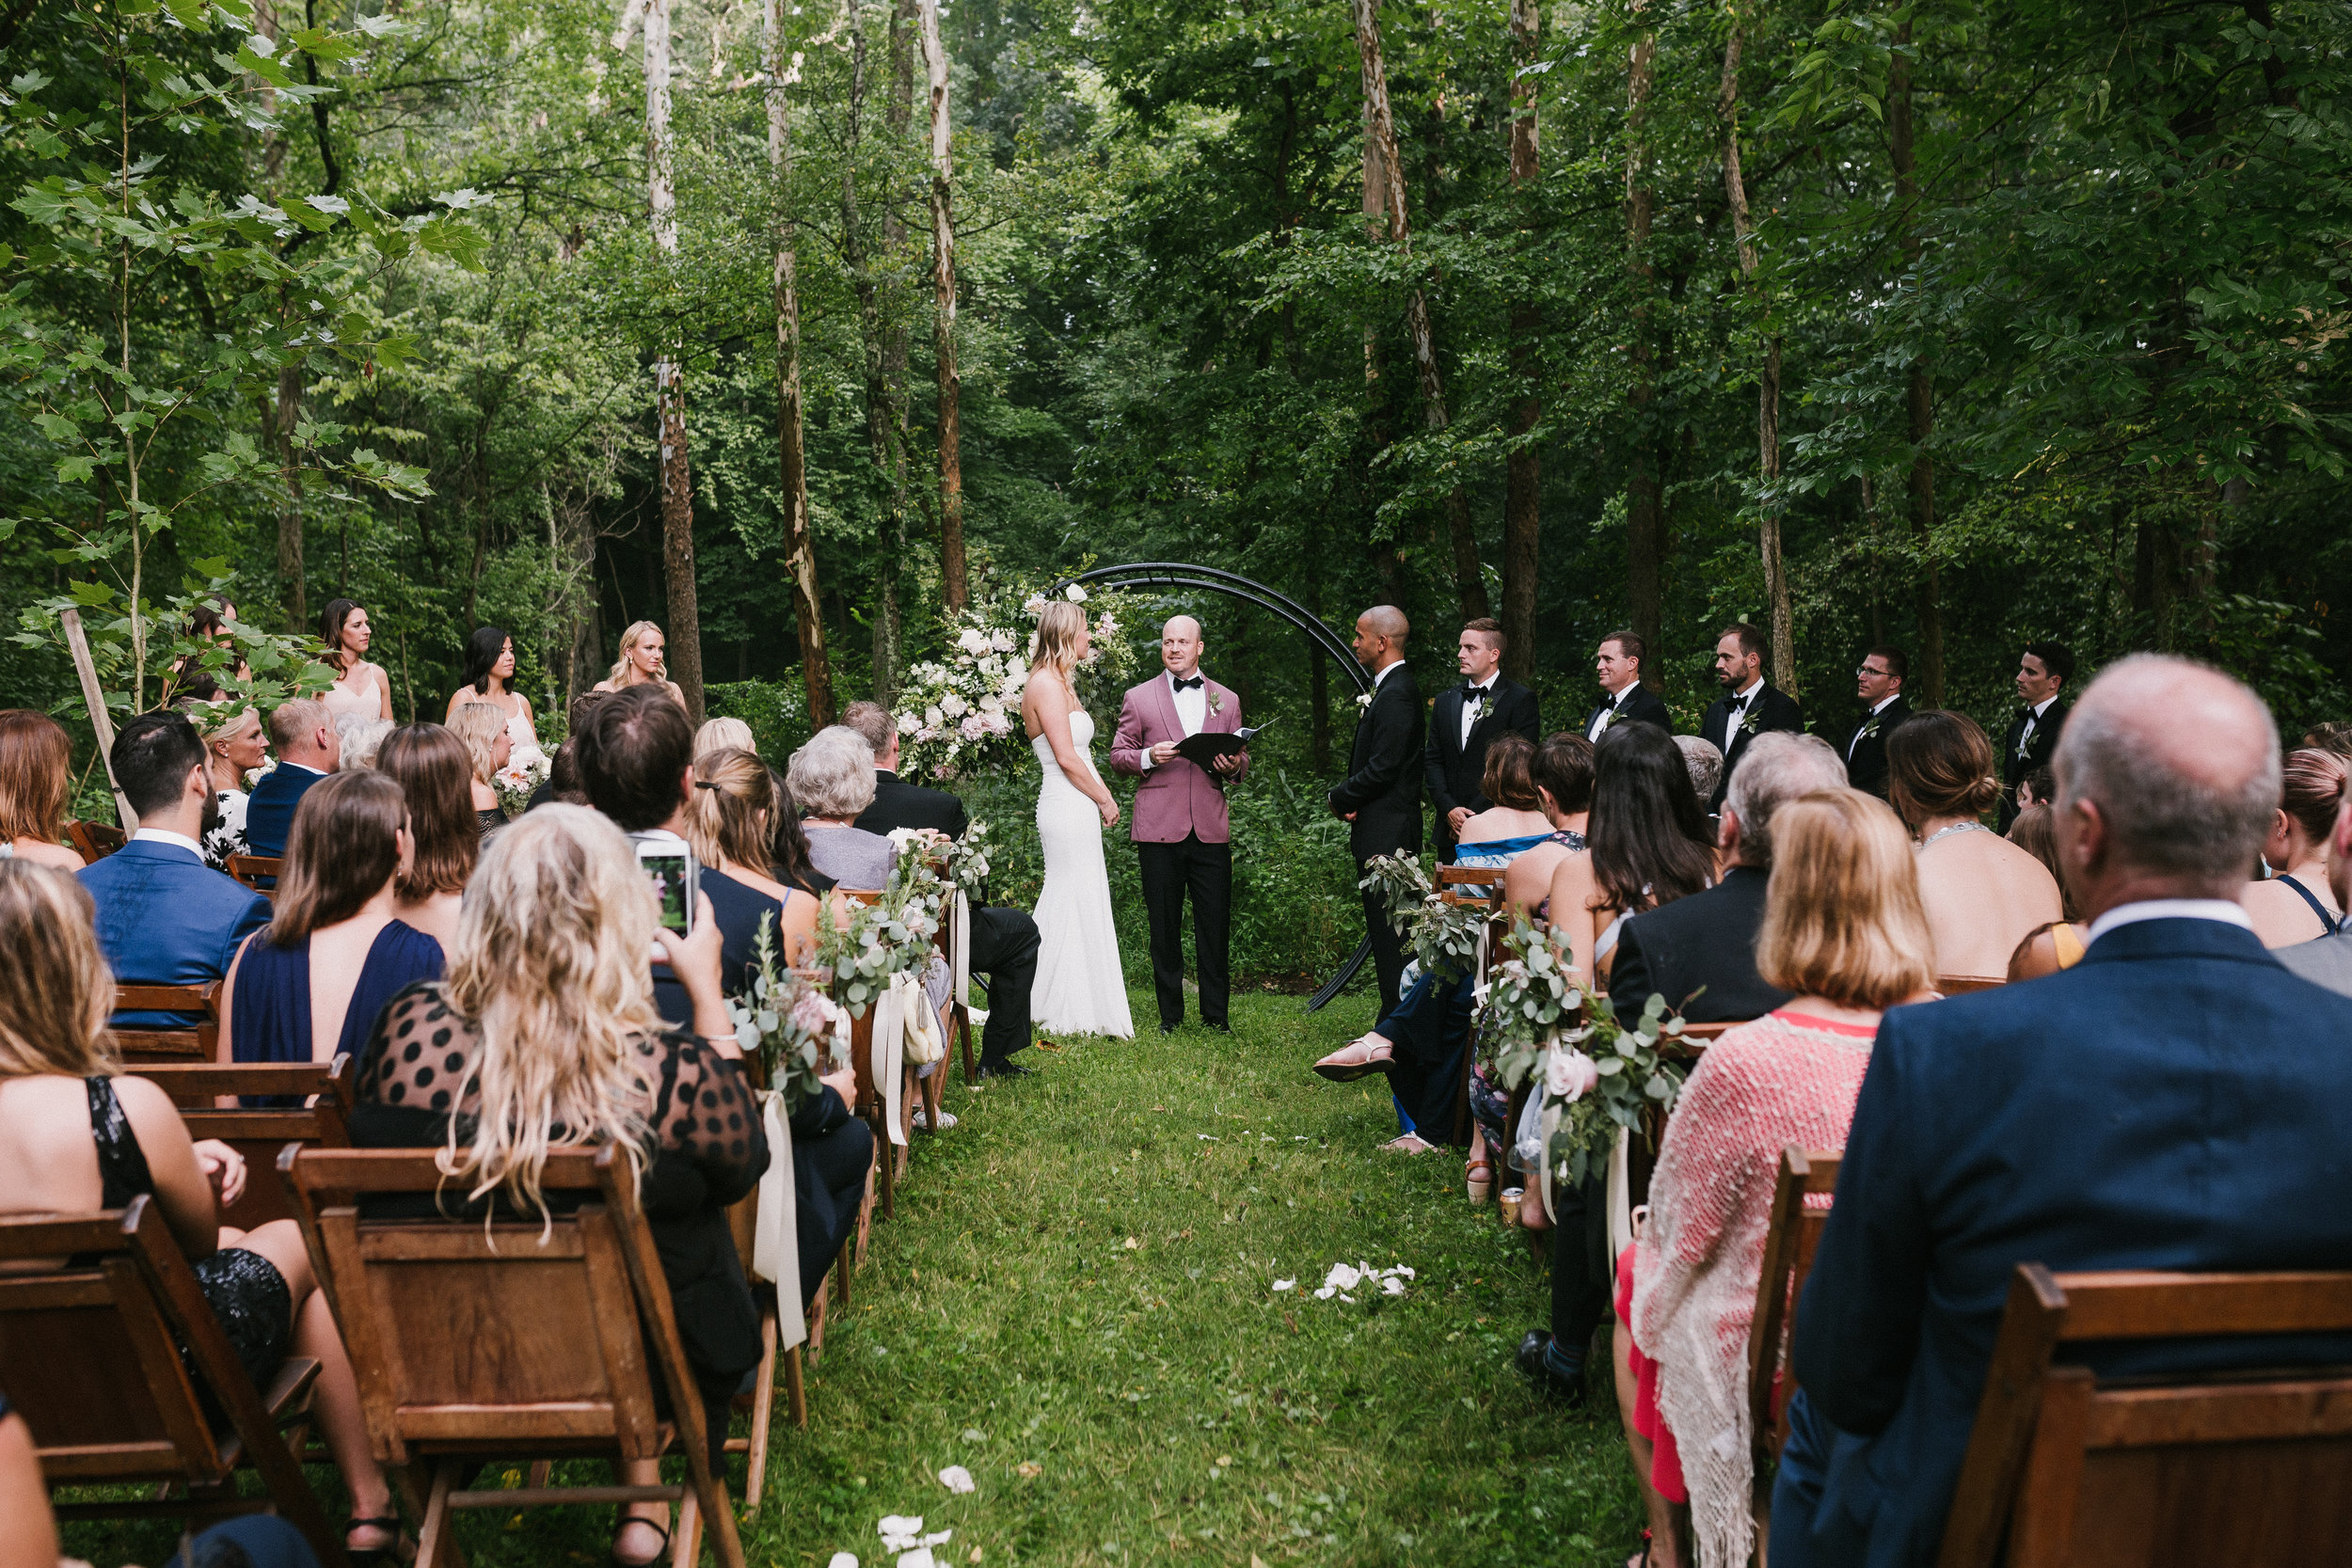 backyard-wedding-dayton-ceremony-wedding-planner.jpg